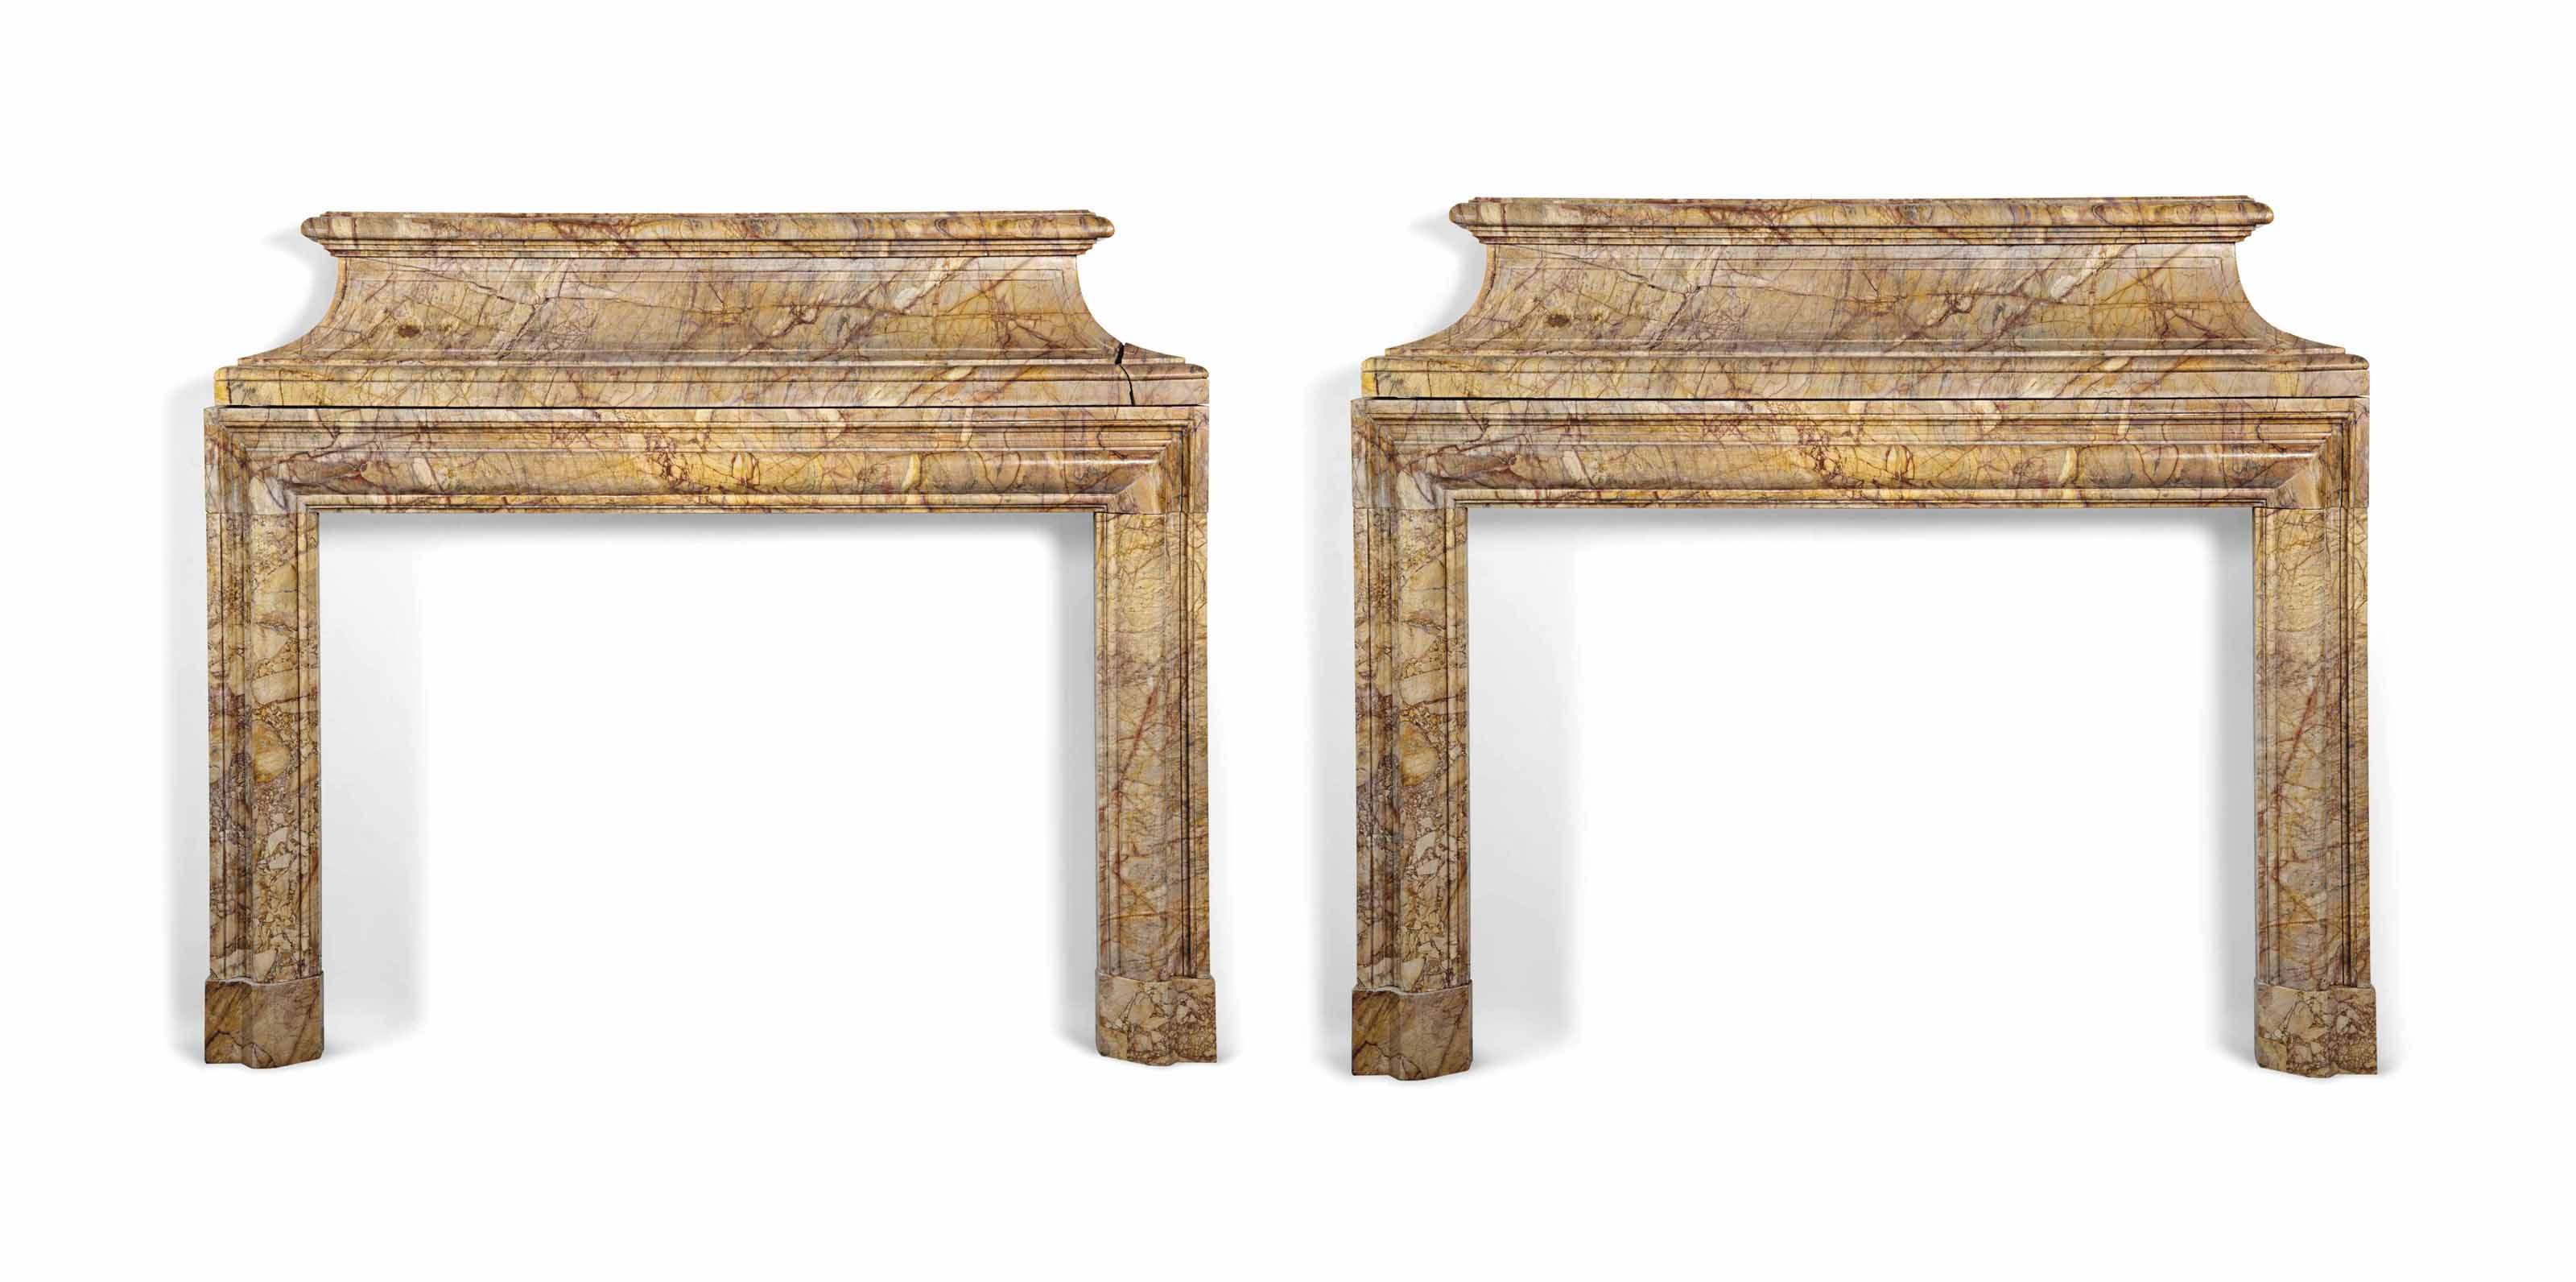 A PAIR OF MARBLE CHIMNEYPIECES